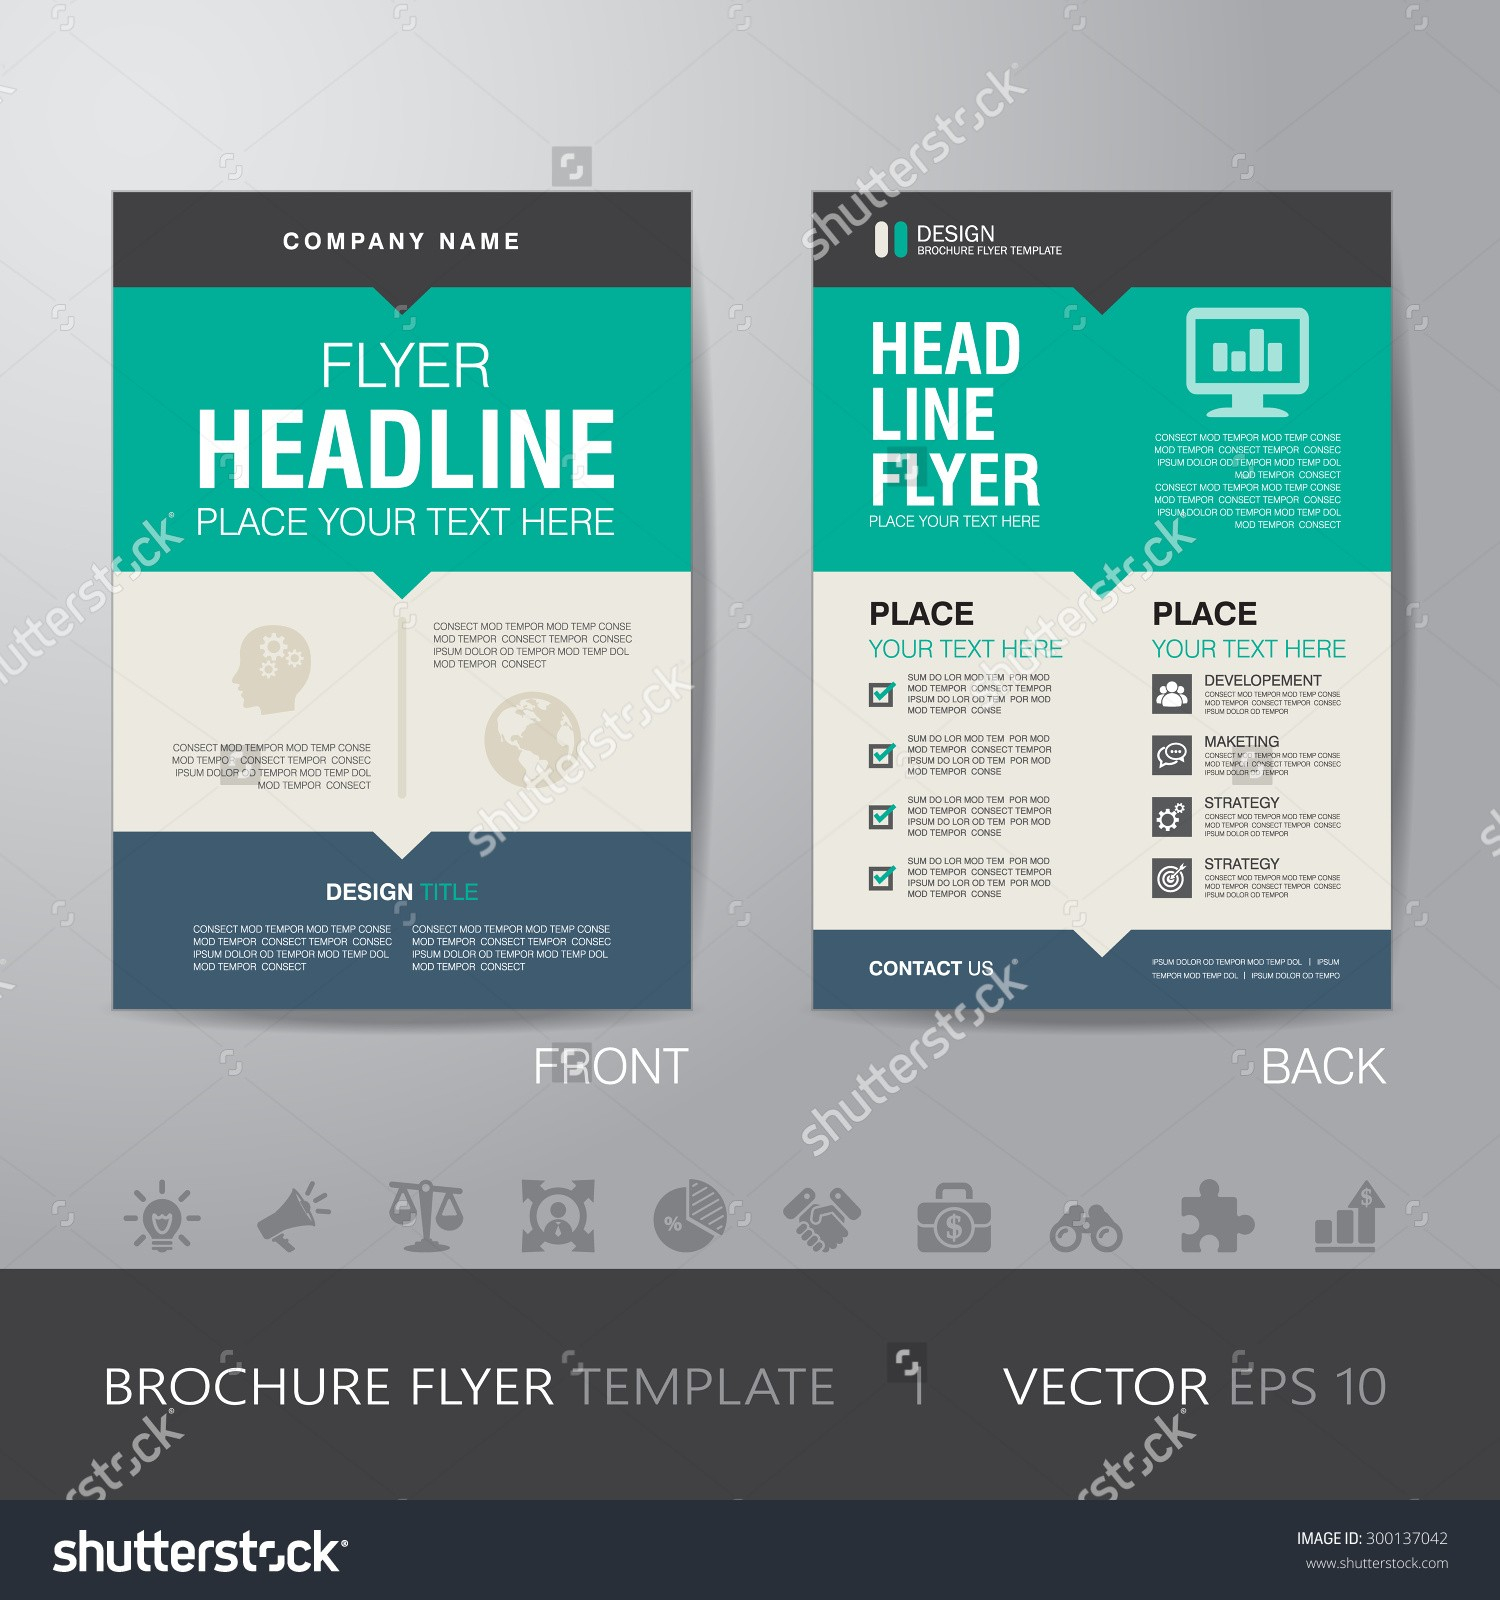 Letter Size Tri Fold Brochure Template - New Google Docs Tri Fold Brochure Template